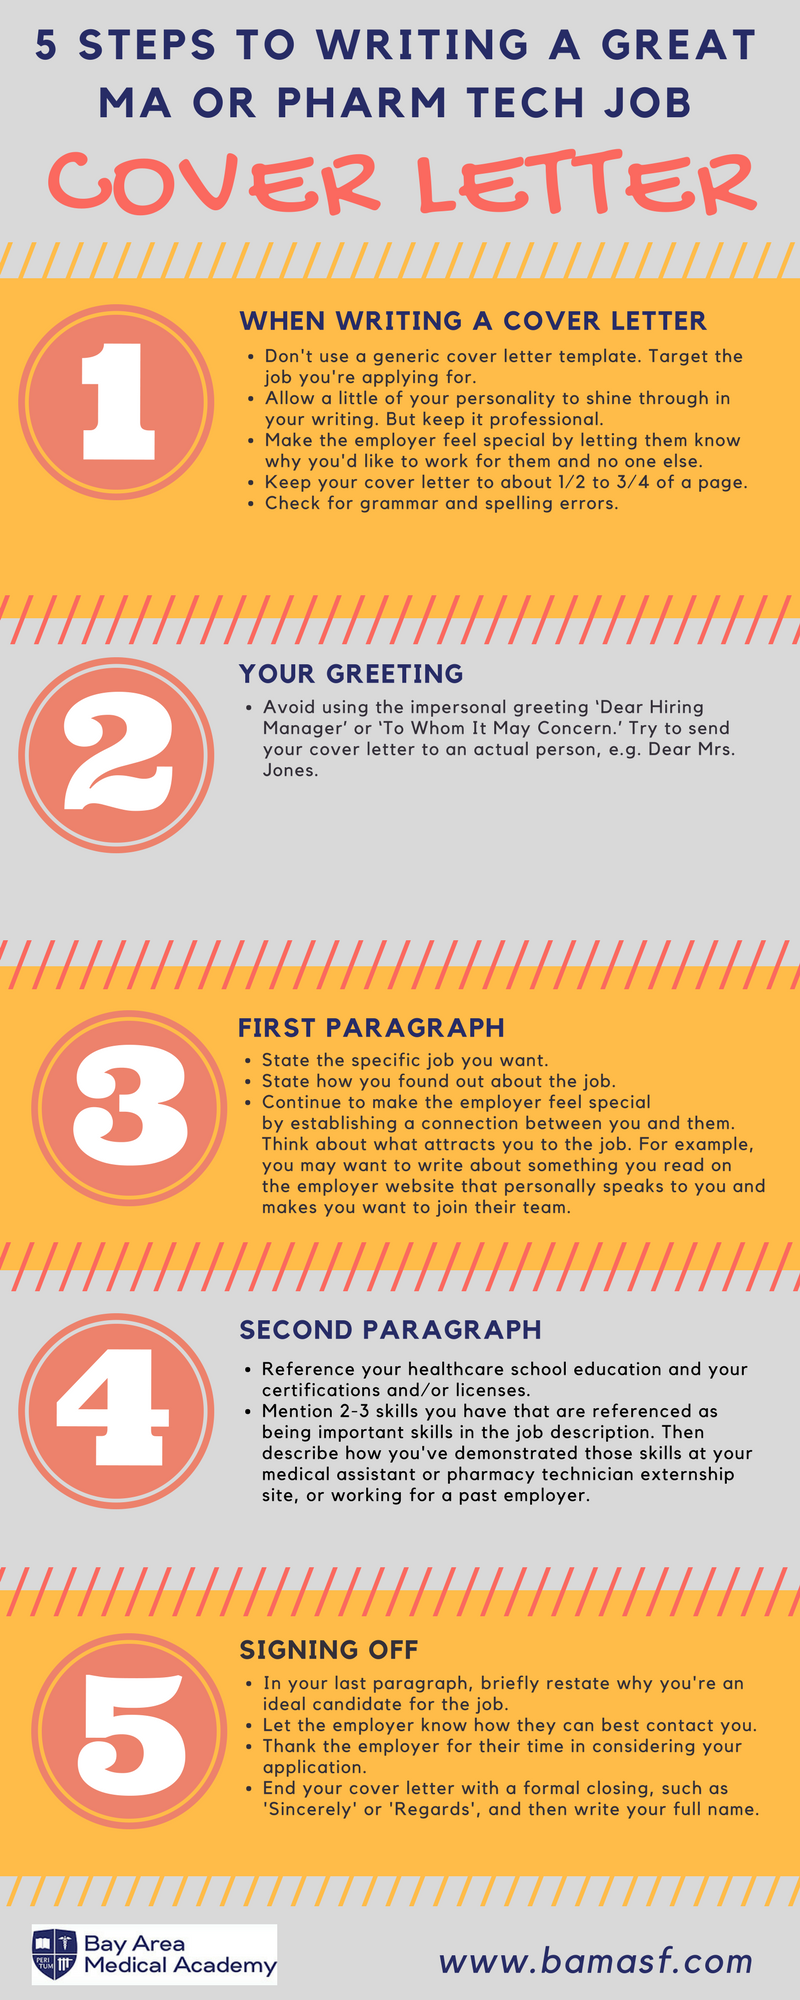 Infographic 5 steps to writing a great medical assistant or how to write a ma or pharmacy technician cover letter useg madrichimfo Choice Image